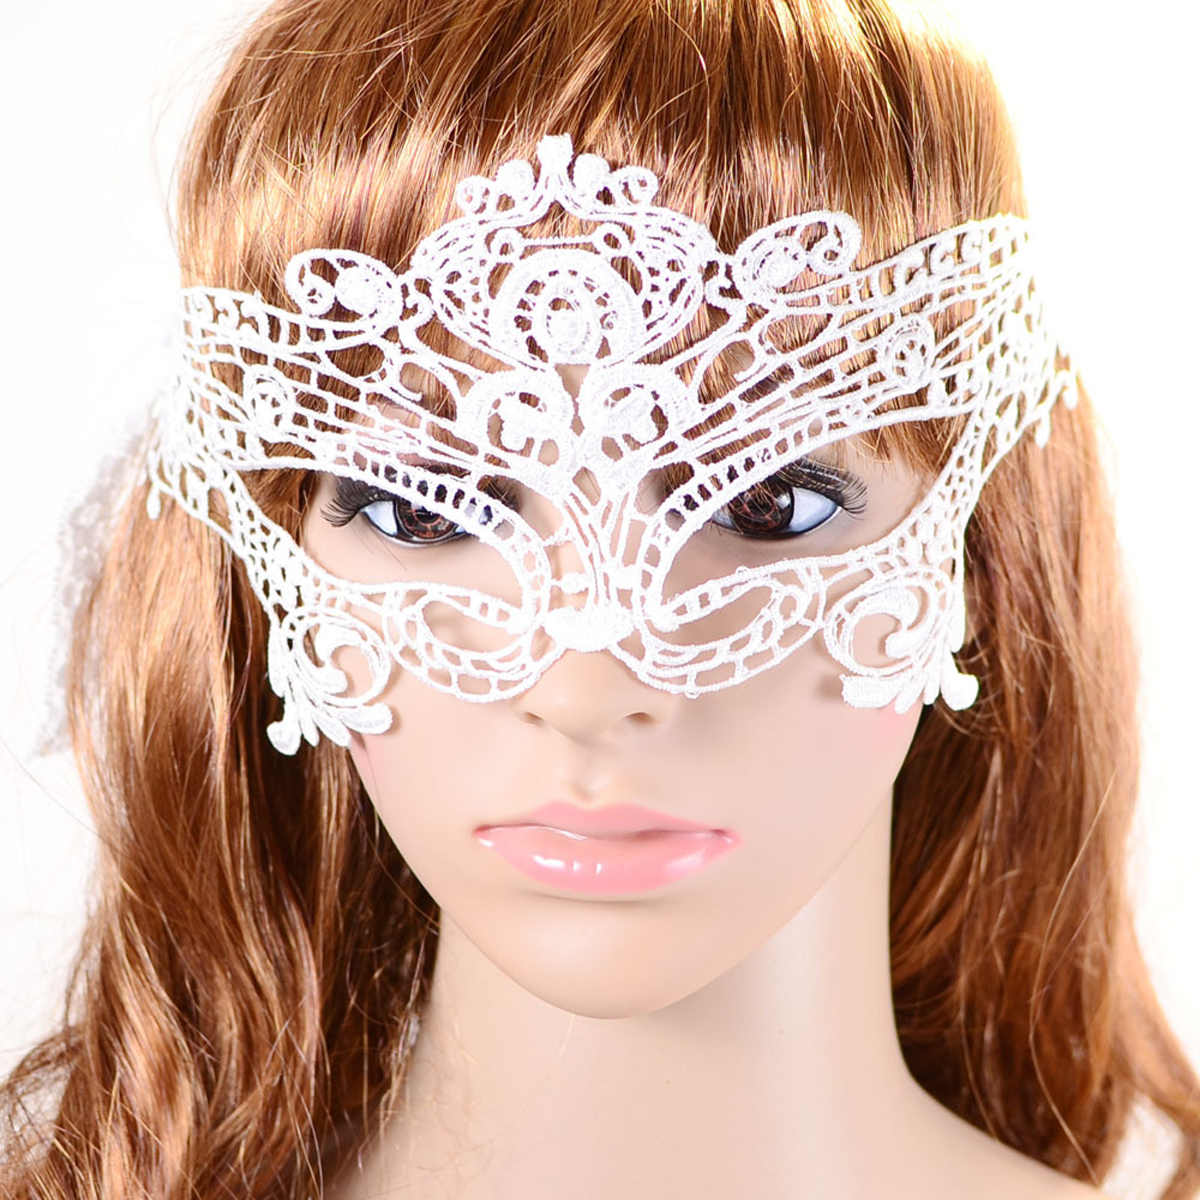 Women's Cosplay Sexy Eye Veil Lace Eye Mask for Halloween /Christmas /Masquerade /Costume Party (White)